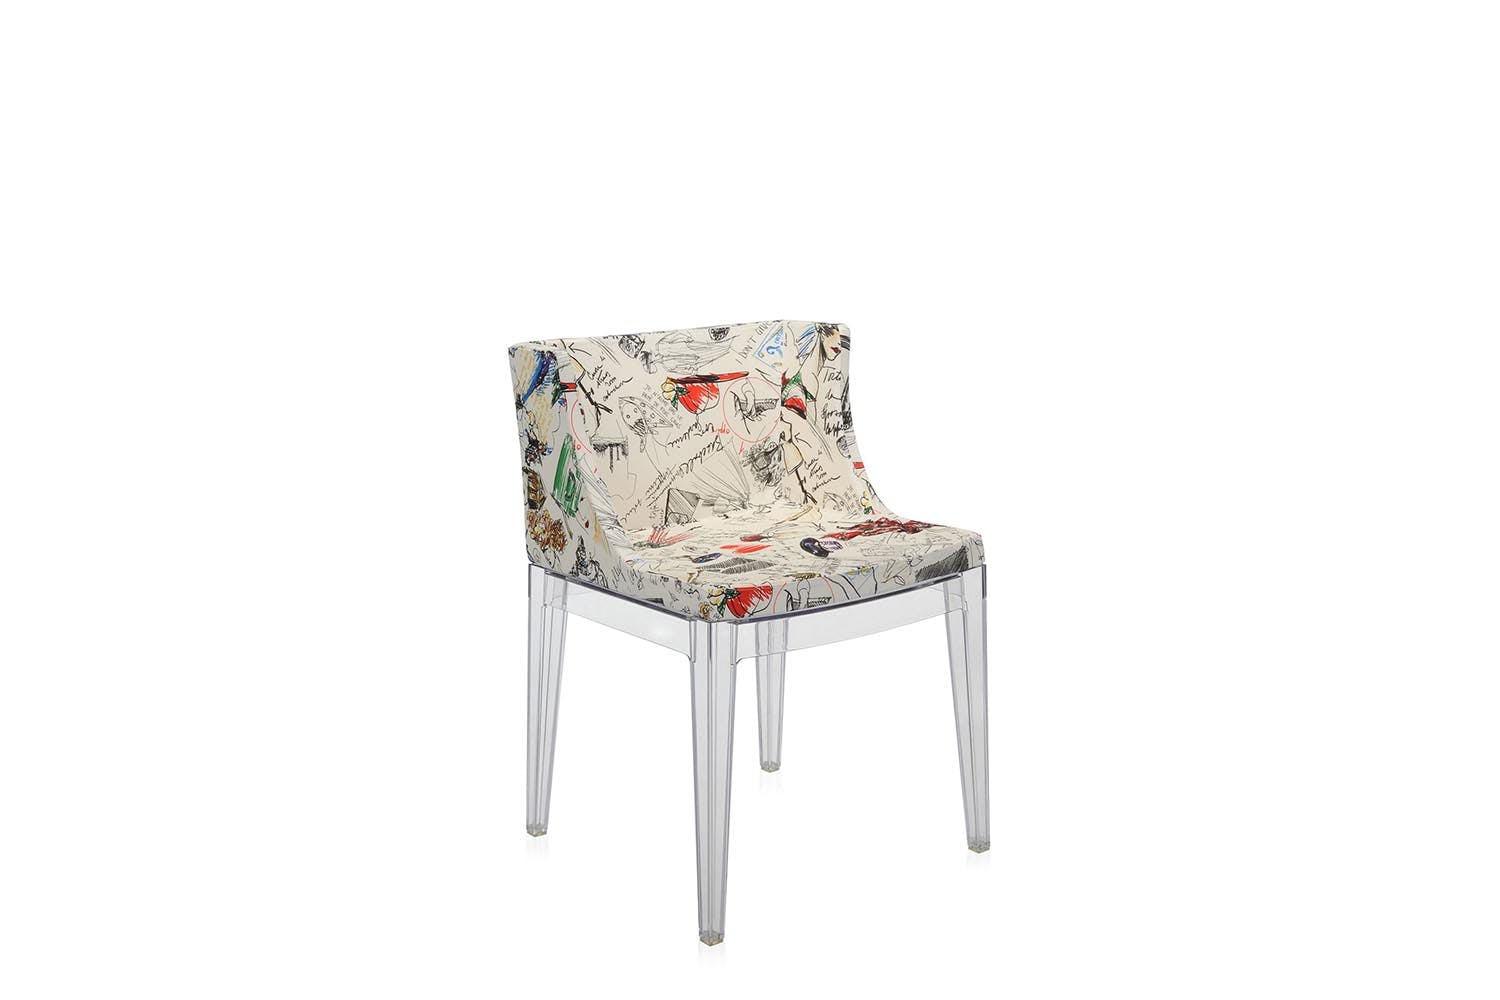 Mademoiselle chair with arms by philippe starck for kartell space furniture - Chaise mademoiselle starck ...